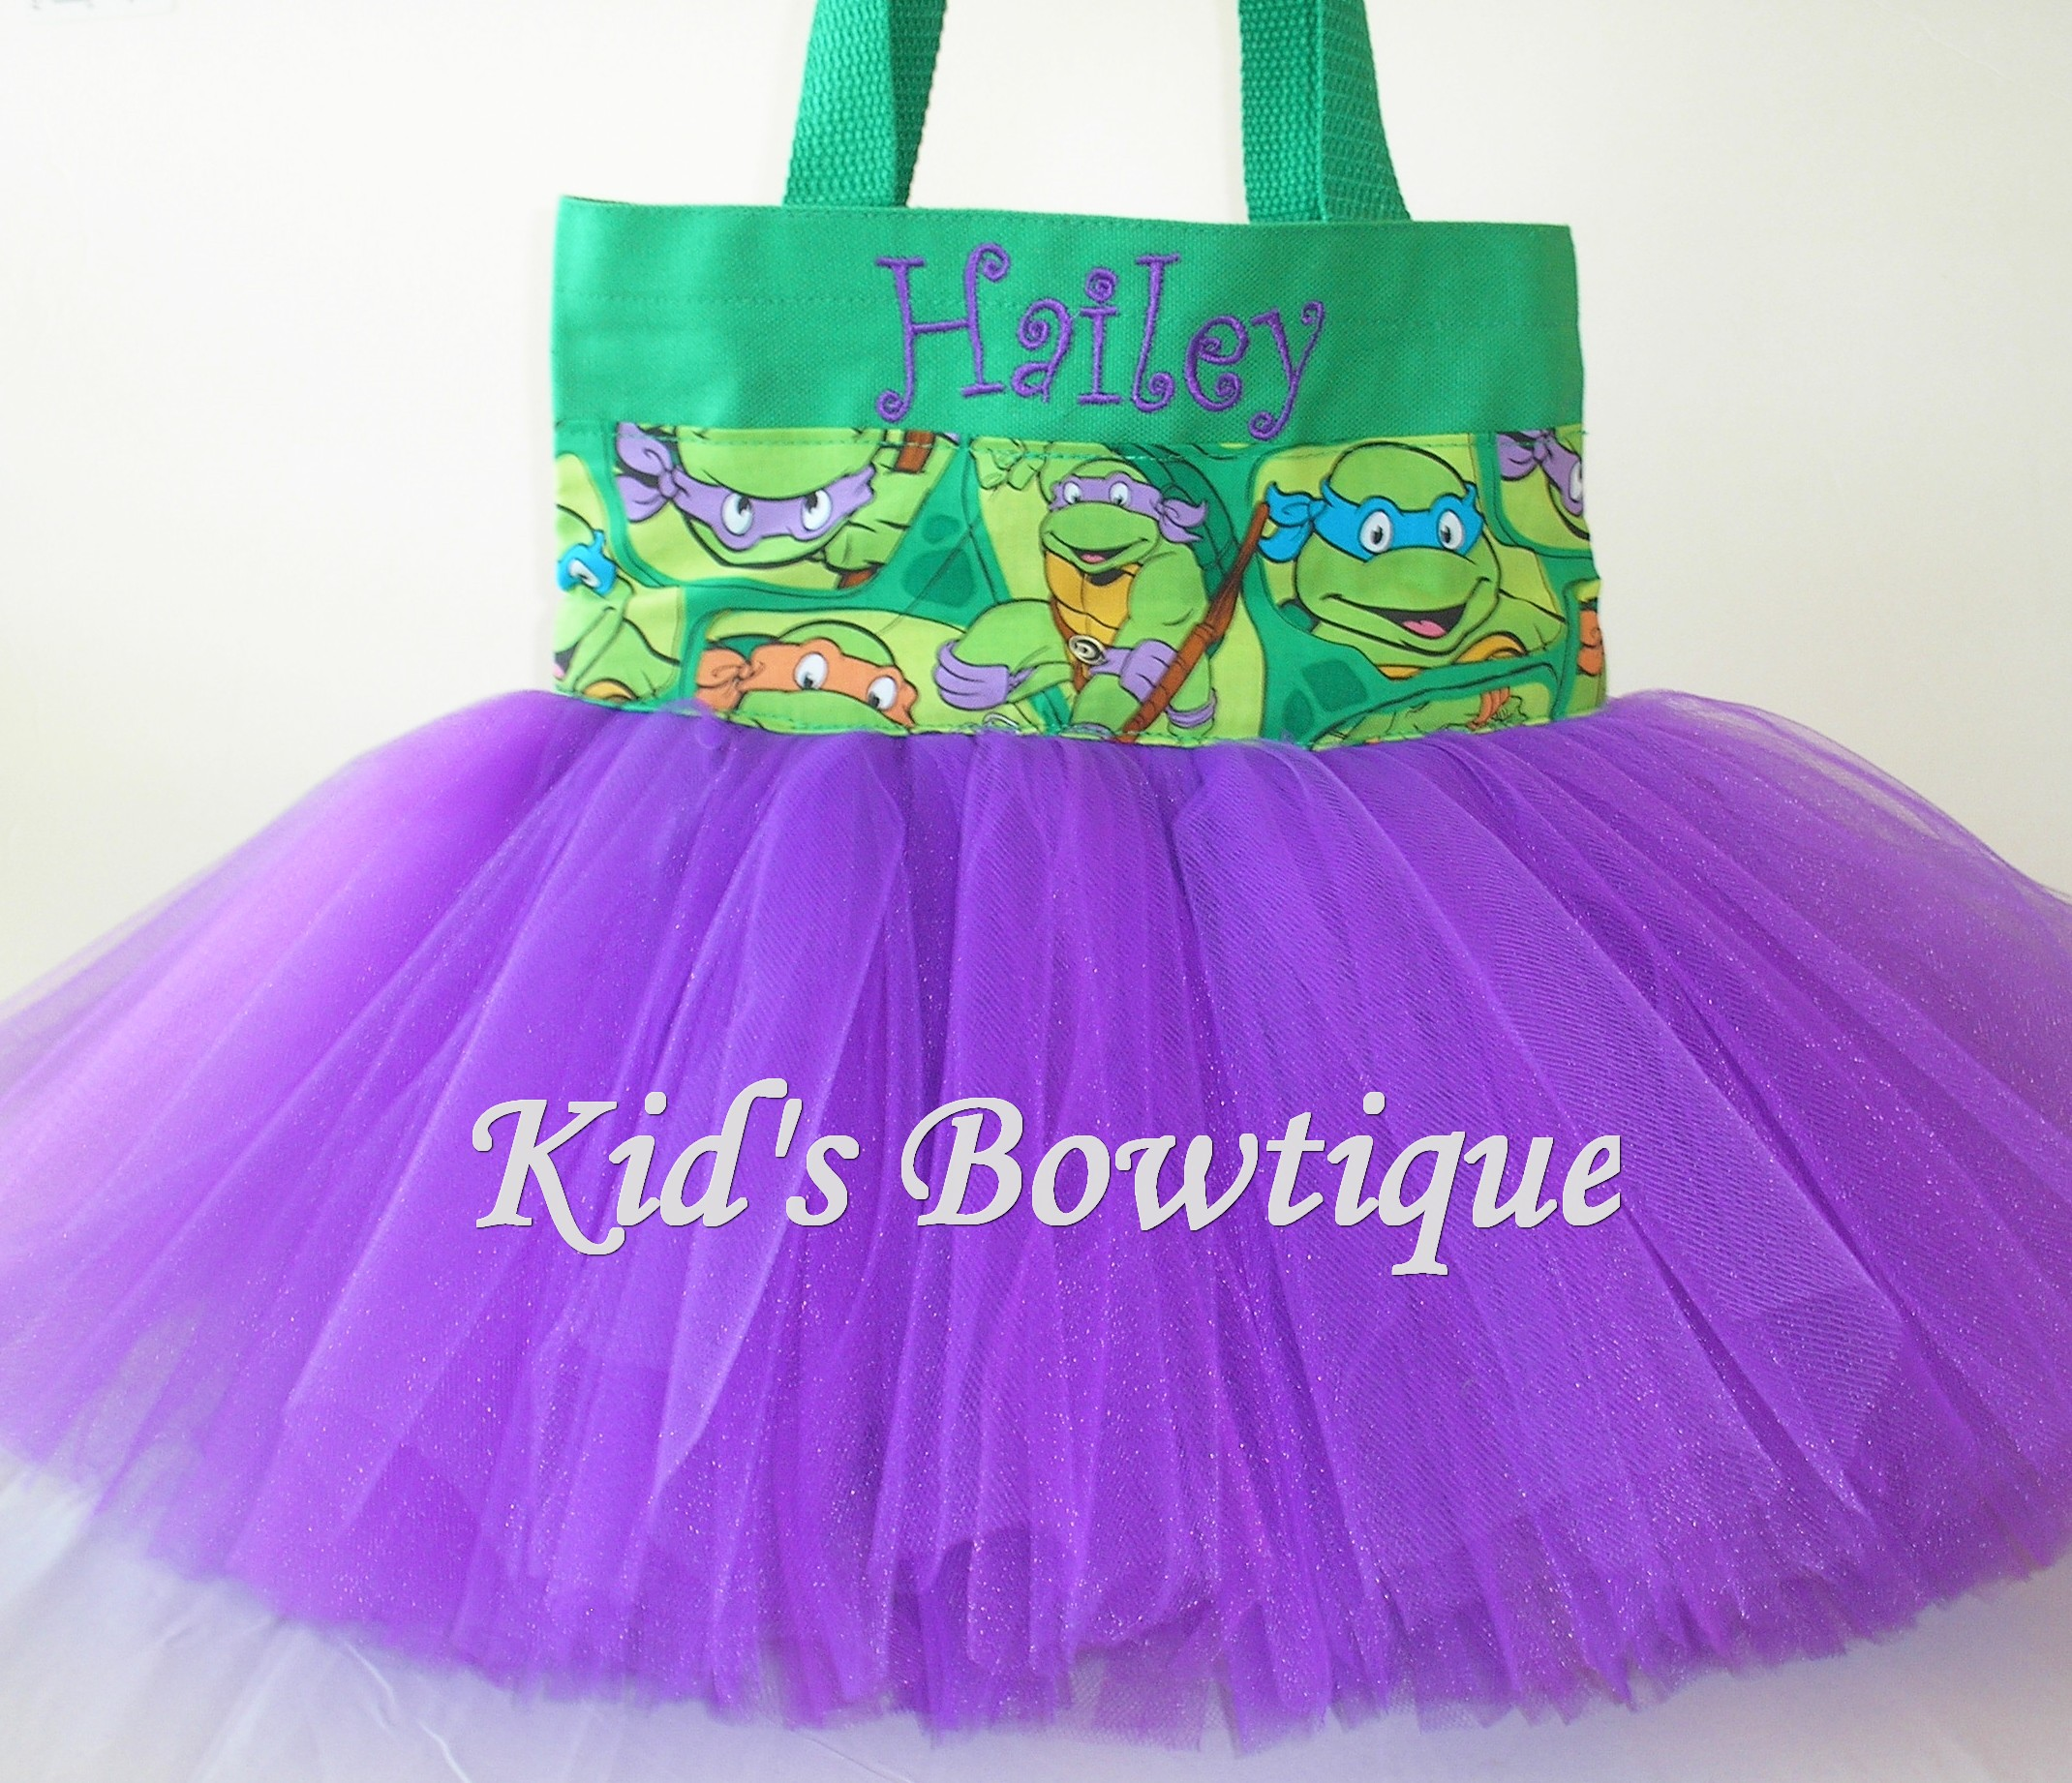 Halloween Tutu Bags - Item HTTB15 Monogrammed Turtles Halloween Tutu Bag